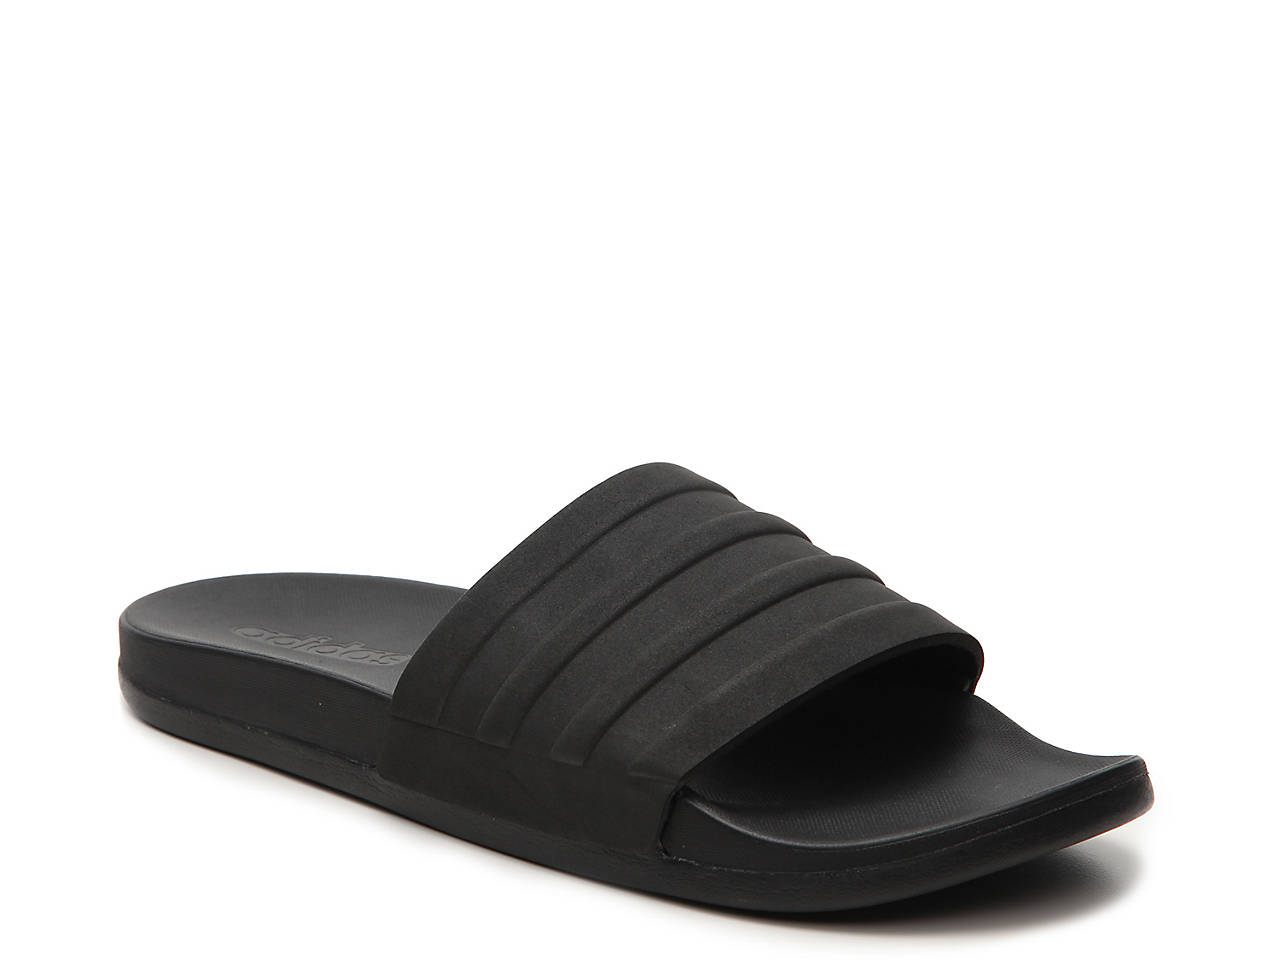 adidas Adilette Cloudfoam Slide Sandal - Men s Men s Shoes  4ee89cc4e